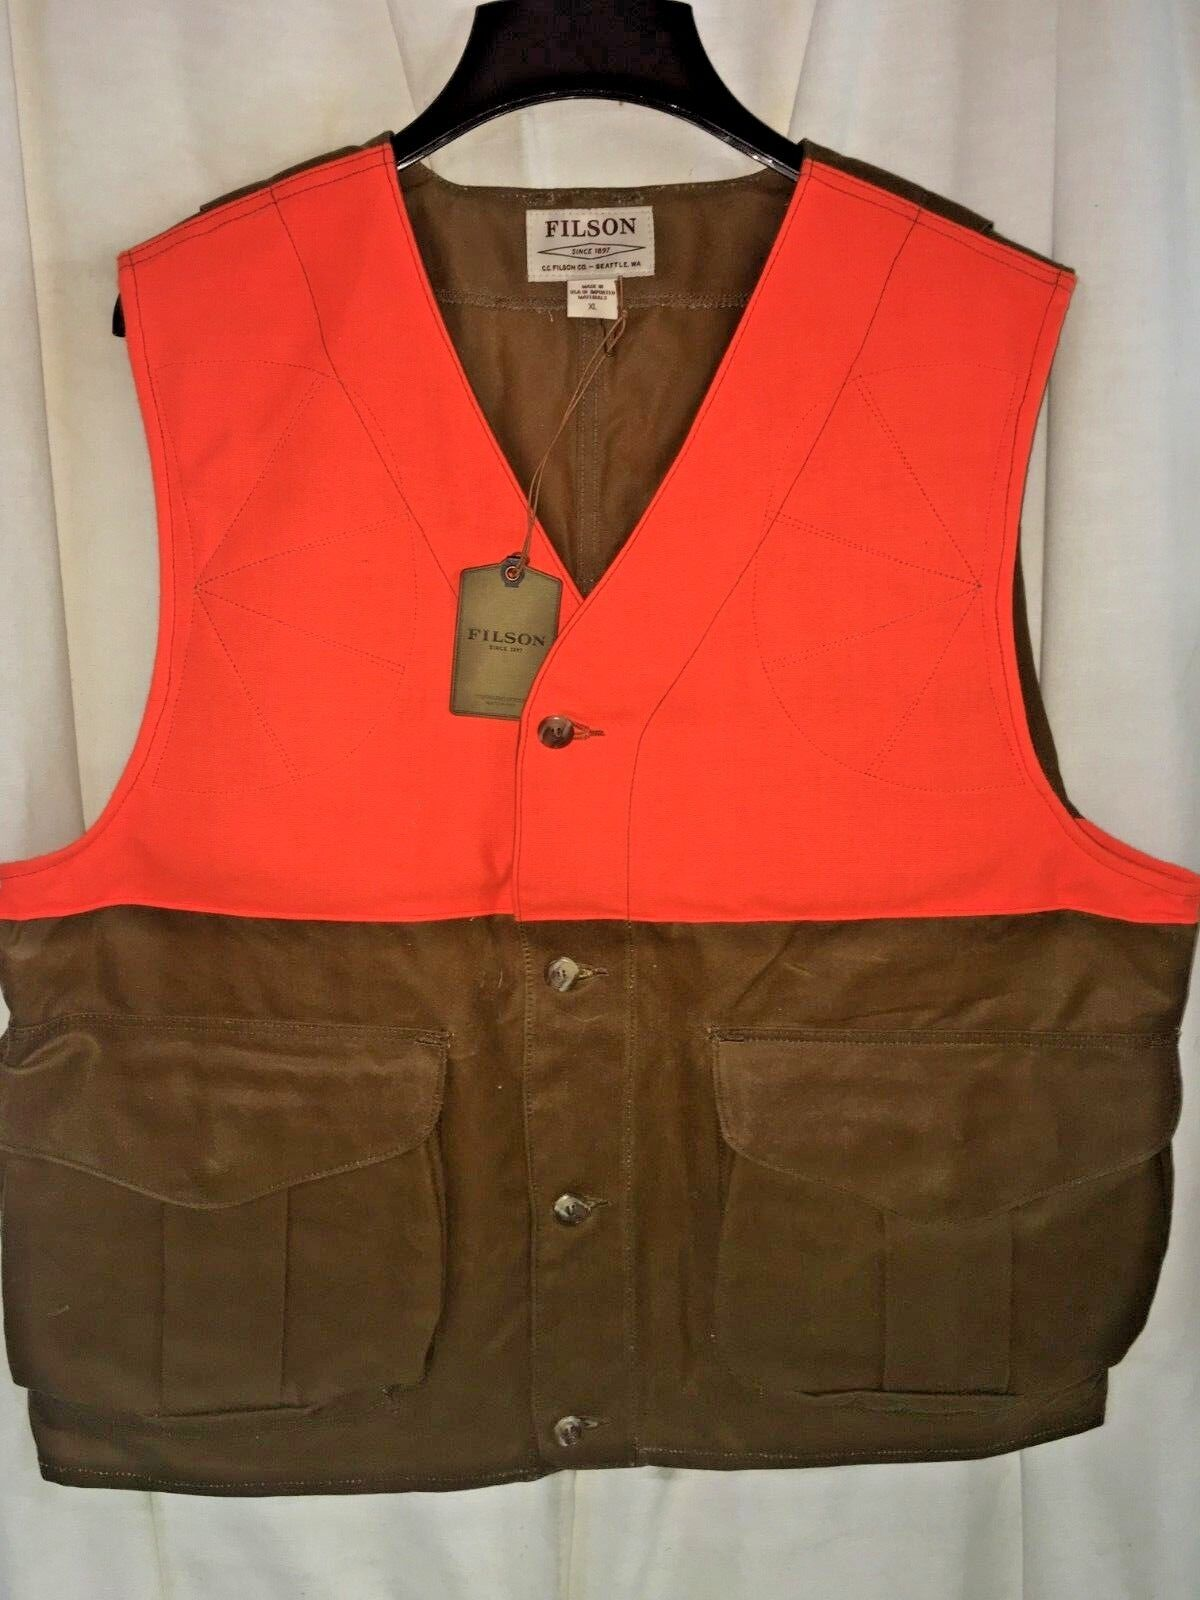 NEW FILSON Made in USA Blaze orange Tin Cloth Upland Hunting Vest XL  225 1ST